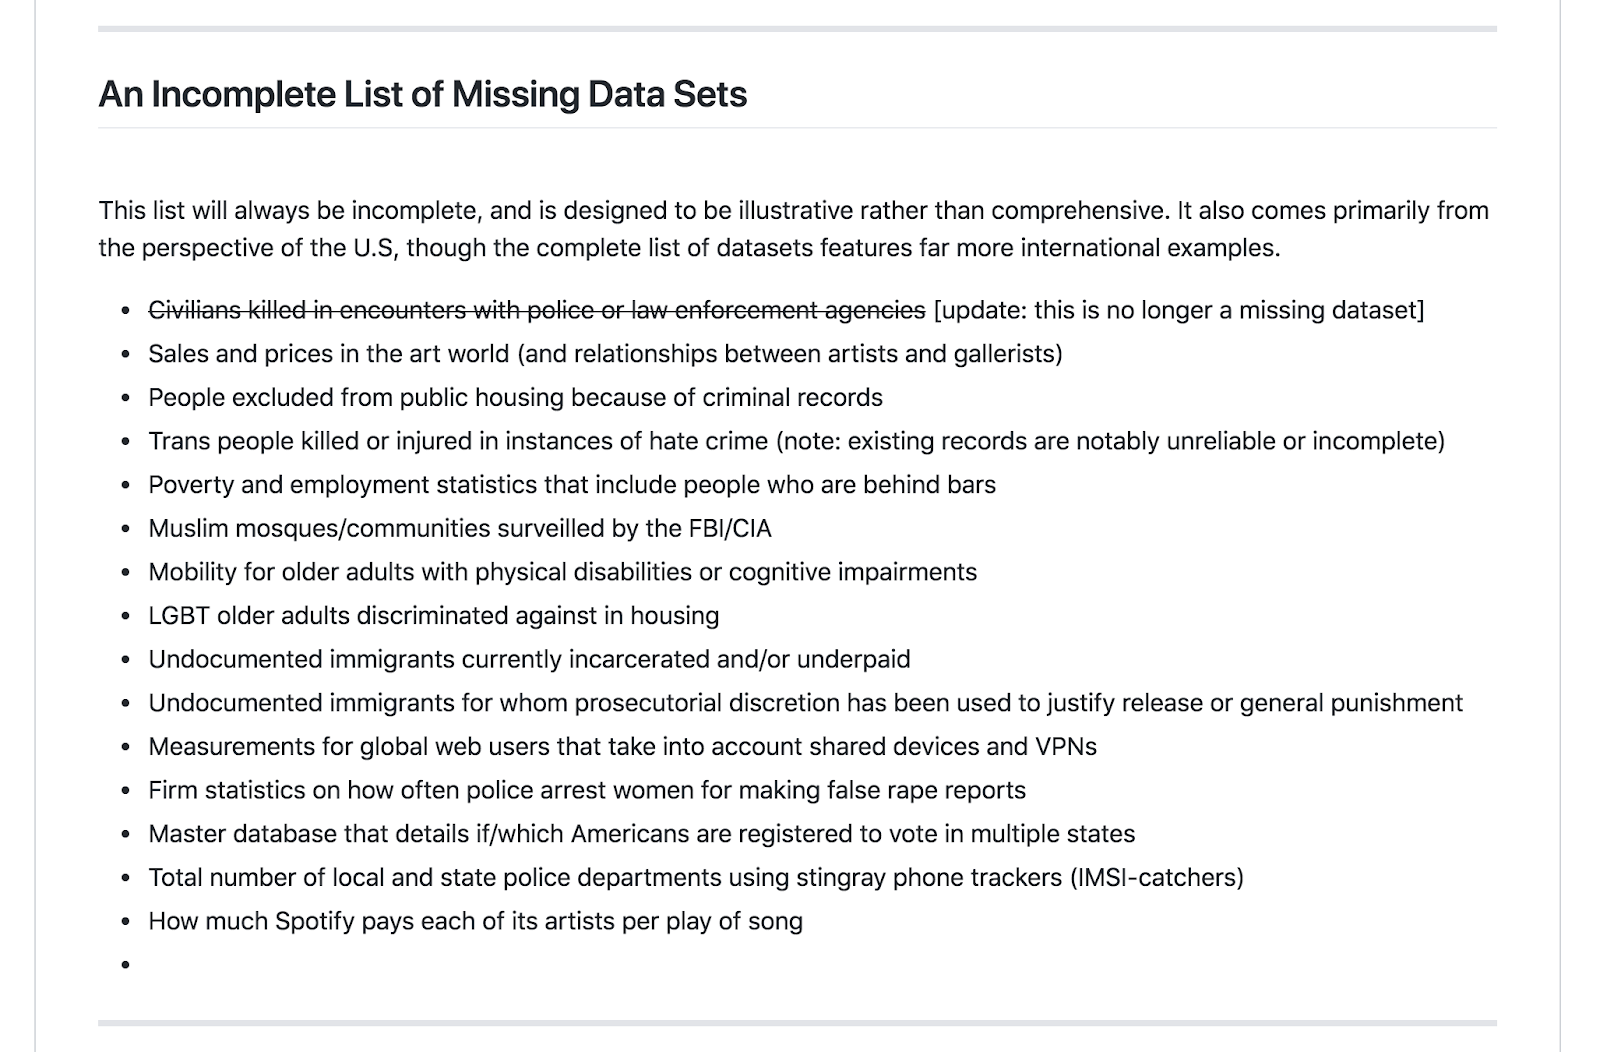 "<p>Onuoha's list of missing datasets includes ""People excluded from public housing because of criminal records,"" ""Mobility for older adults with physical disabilities or cognitive impairments,"" and ""Measurements for global web users that take into account shared devices and VPNs."" By hosting the project on GitHub, Onuoha allows visitors to the site to suggest additional missing datasets that she might include.</p><p>Credit: Mimi Onuoha</p><p>Source: https://github.com/MimiOnuoha/missing-datasets</p><p><br><br><br></p>"